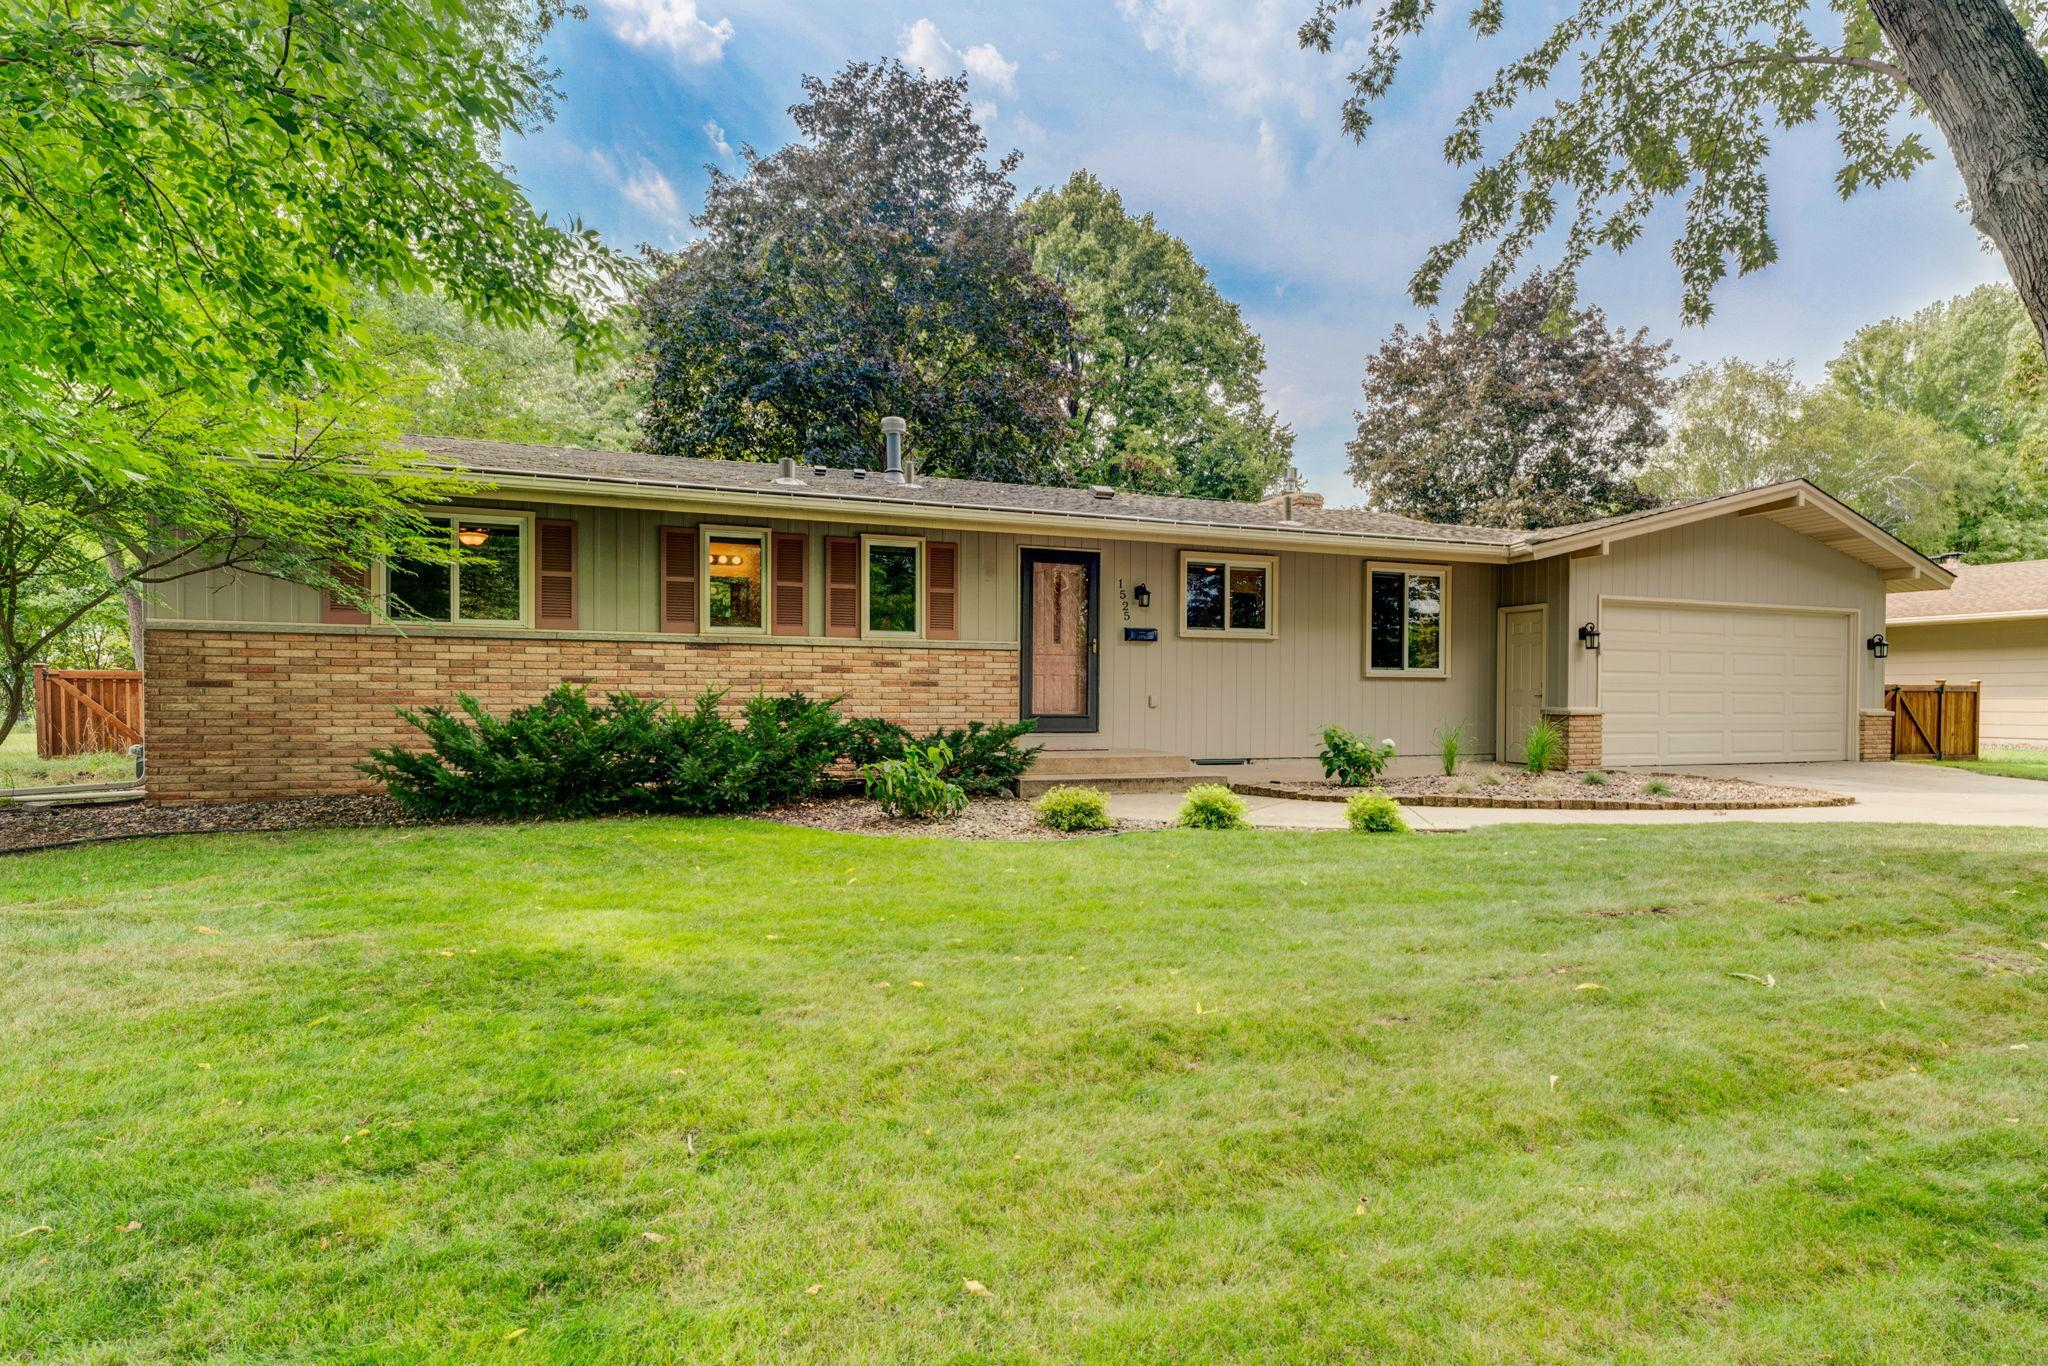 1525 Louisiana Avenue N Property Photo - Golden Valley, MN real estate listing